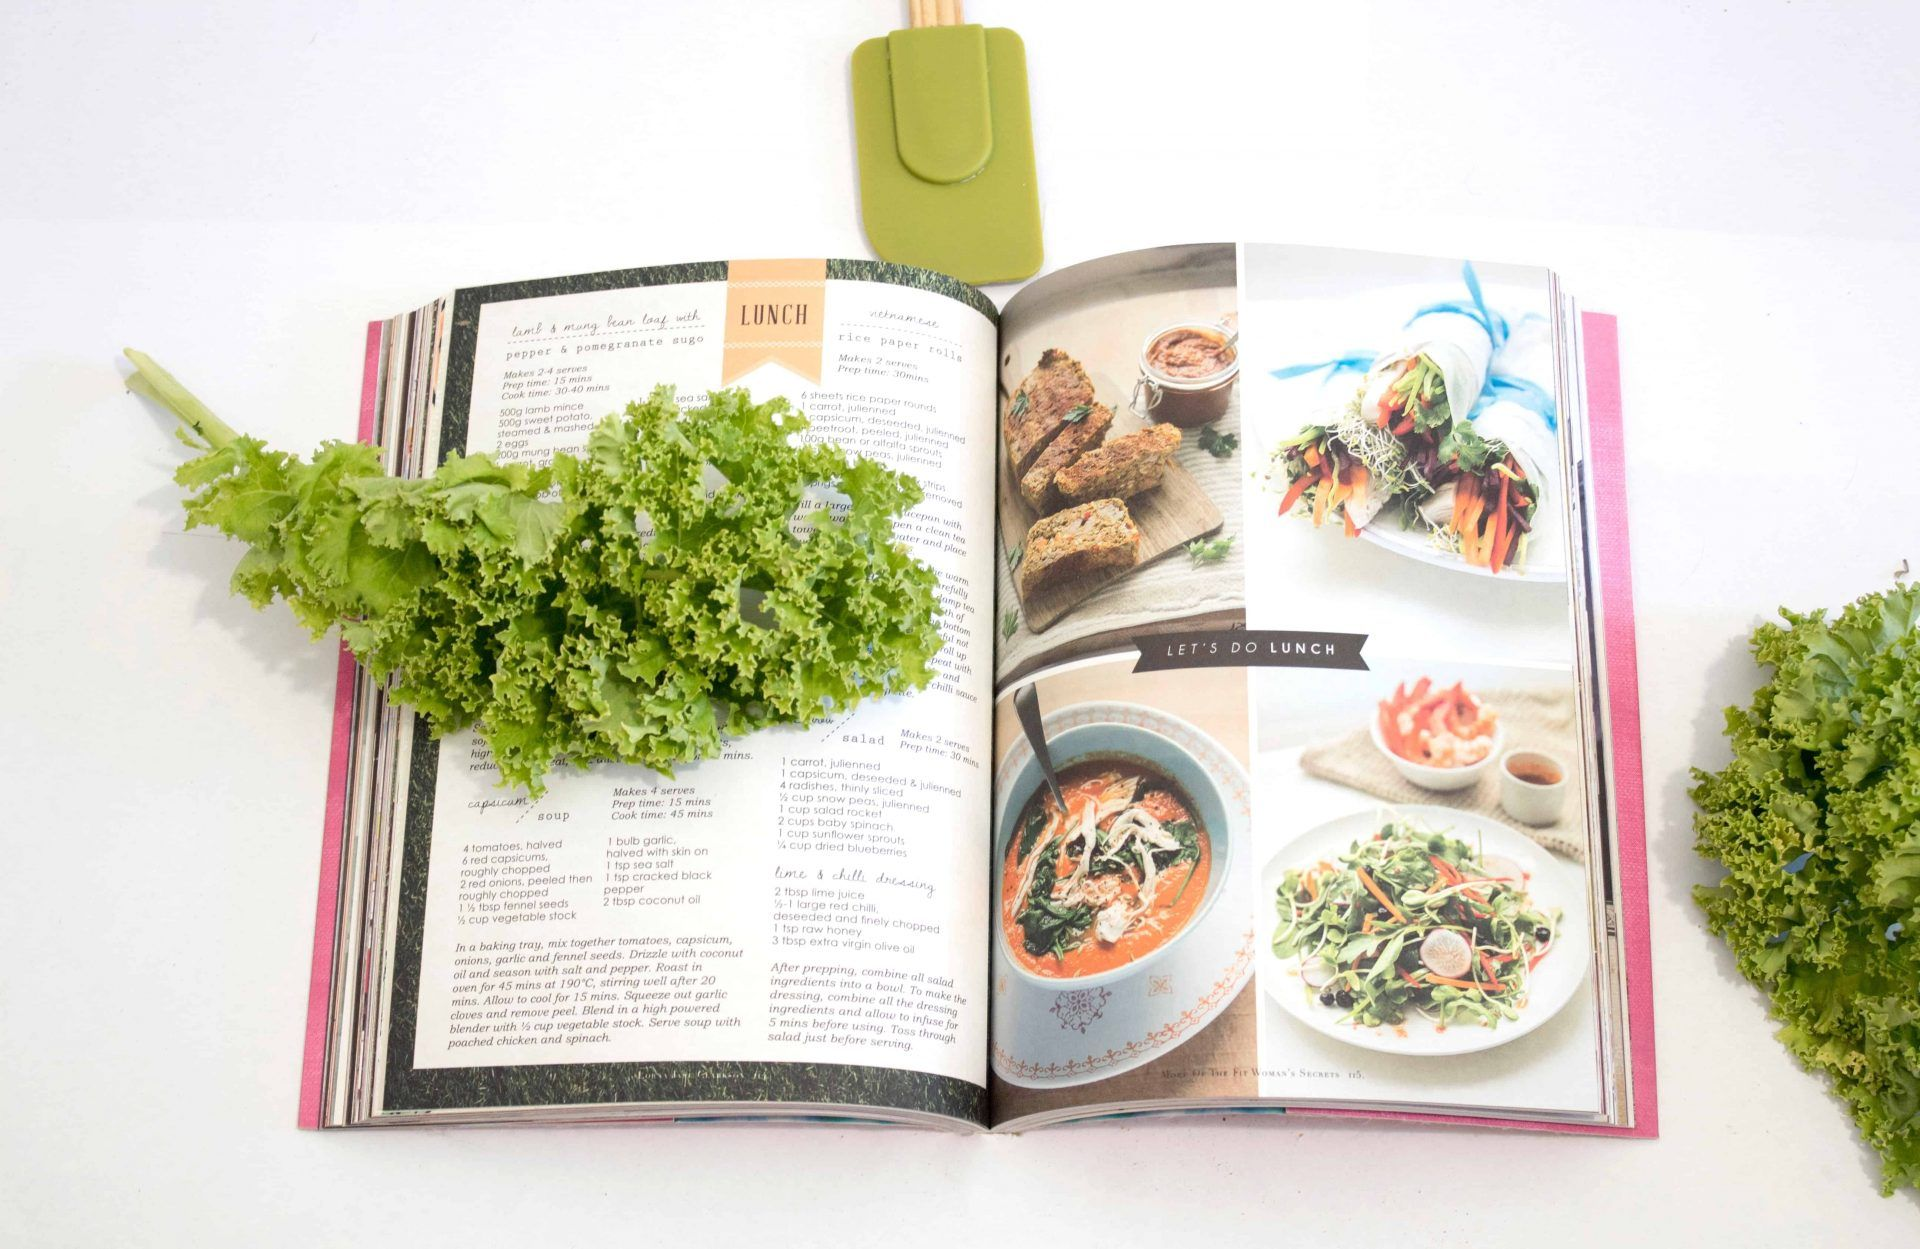 Open vegan cookbook with kale leaves and spatula next to book